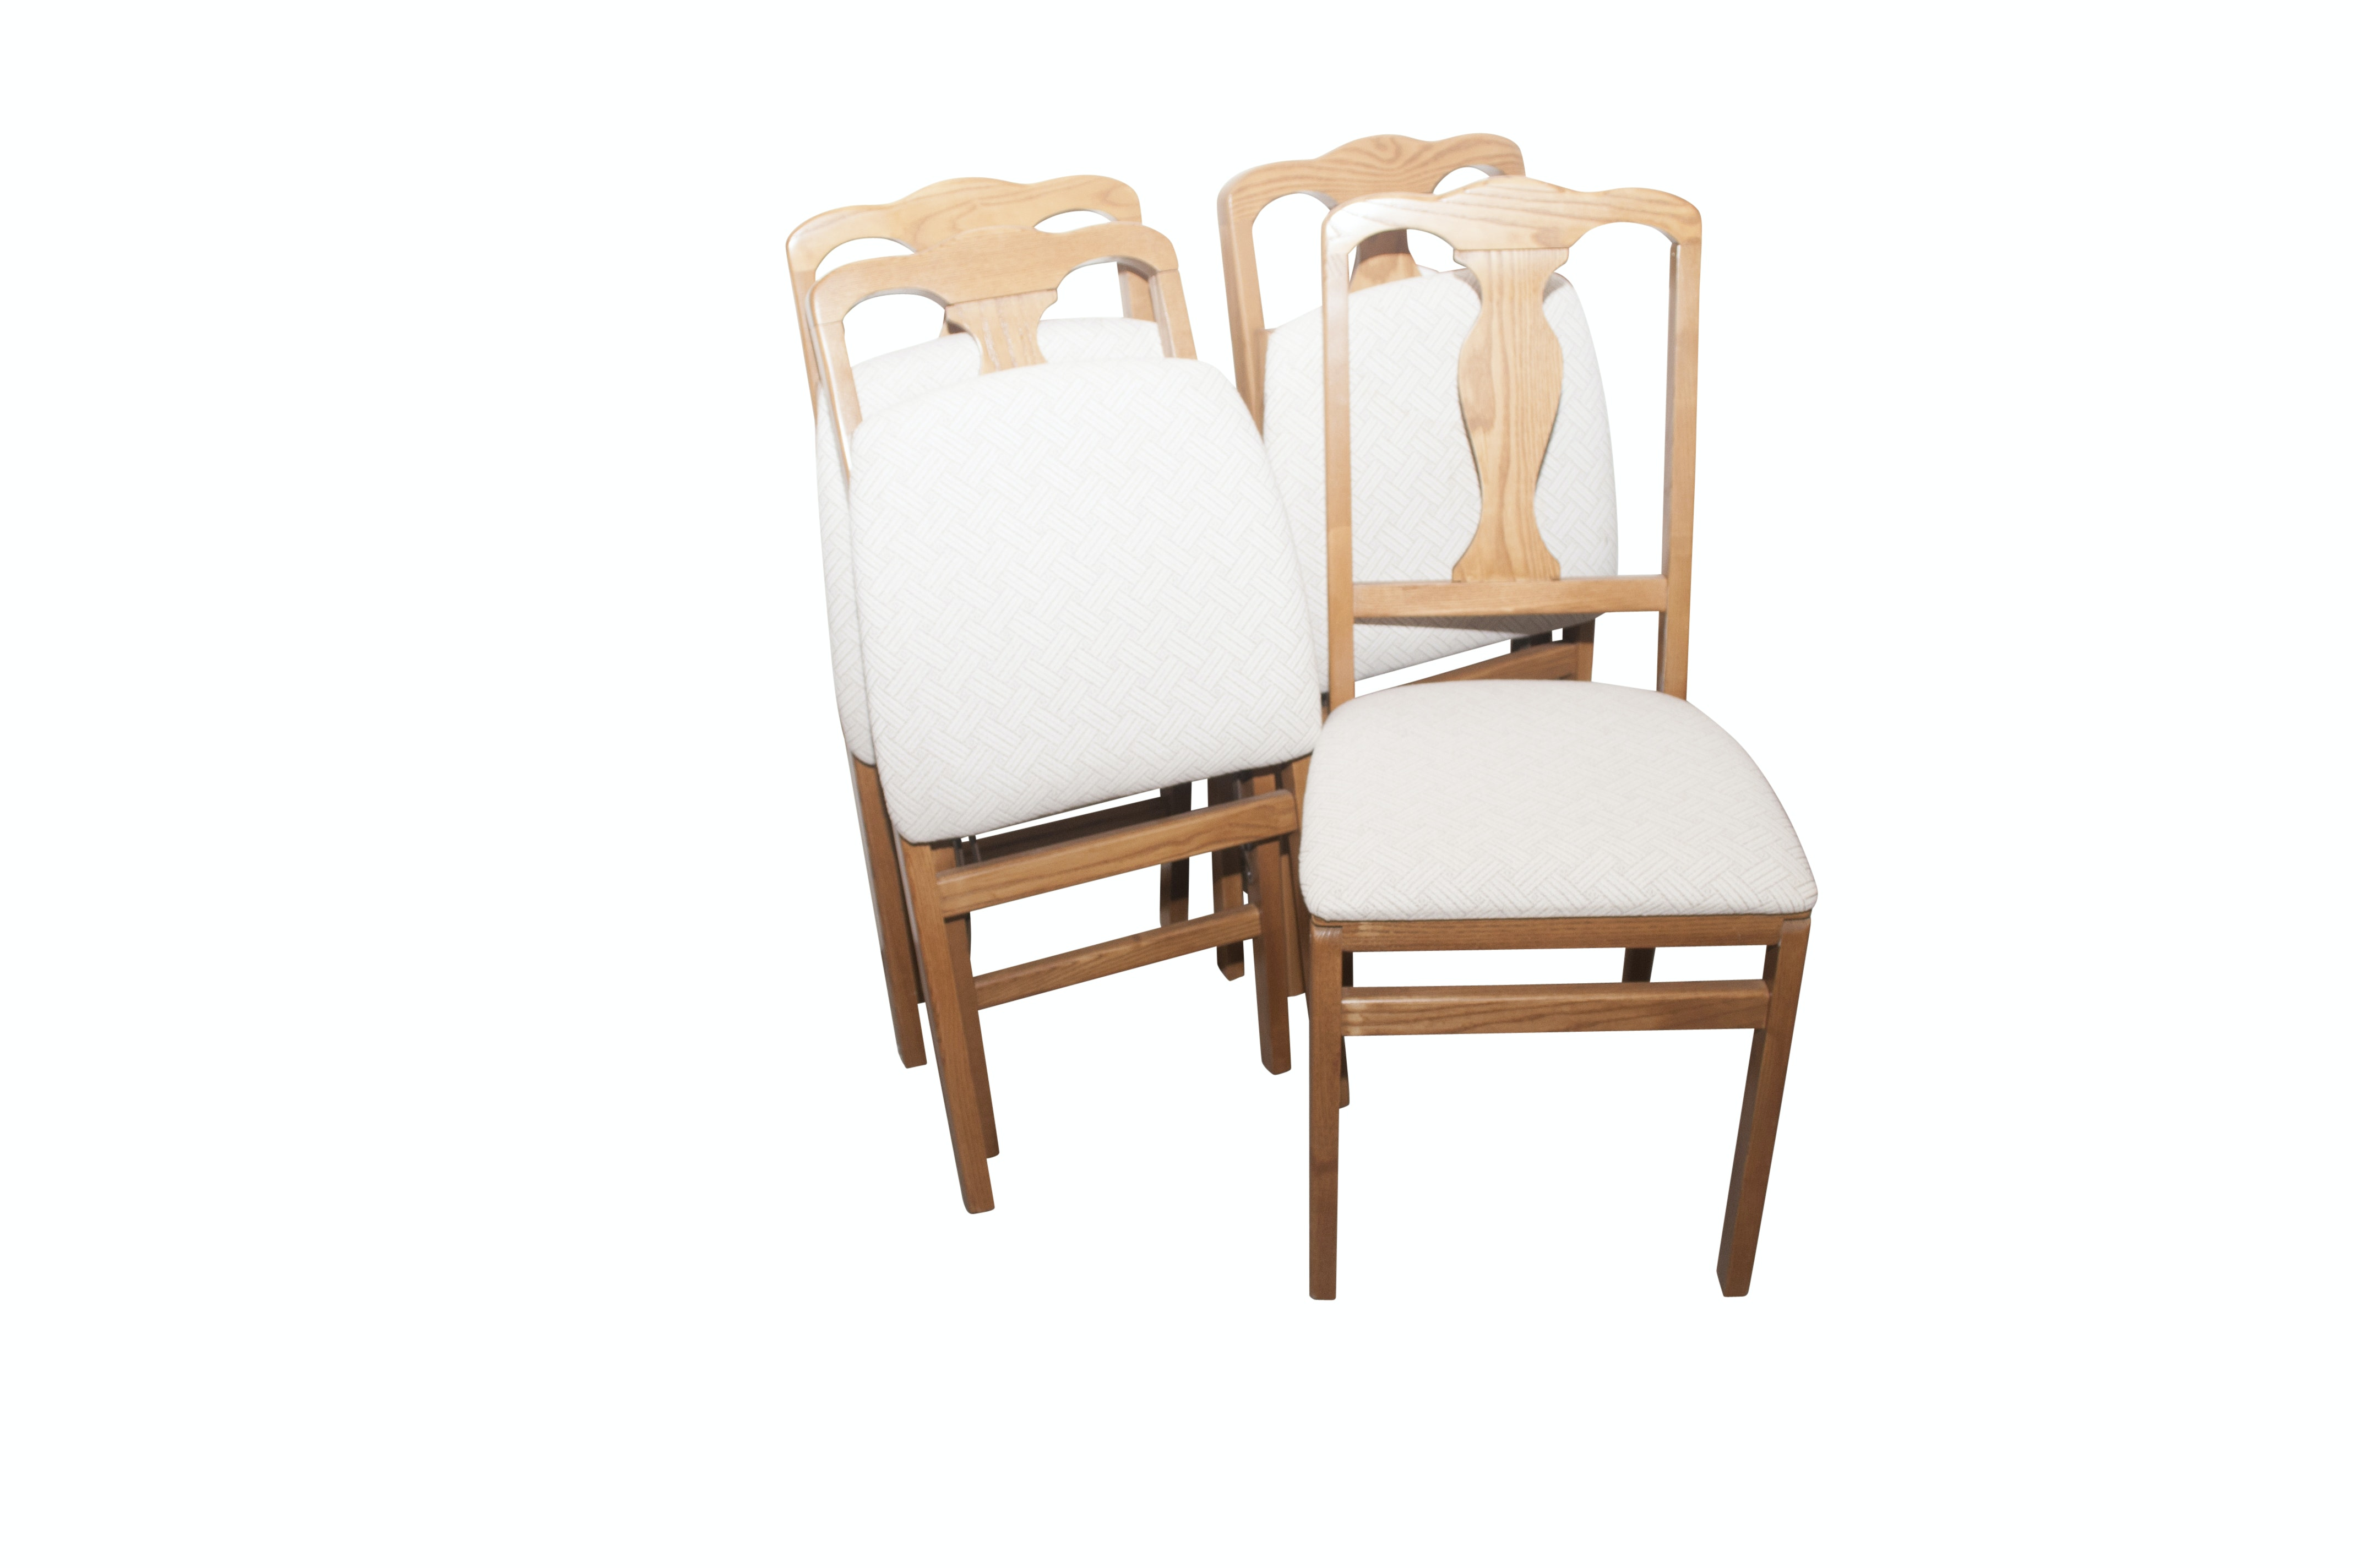 Wooden Folding Chairs Group